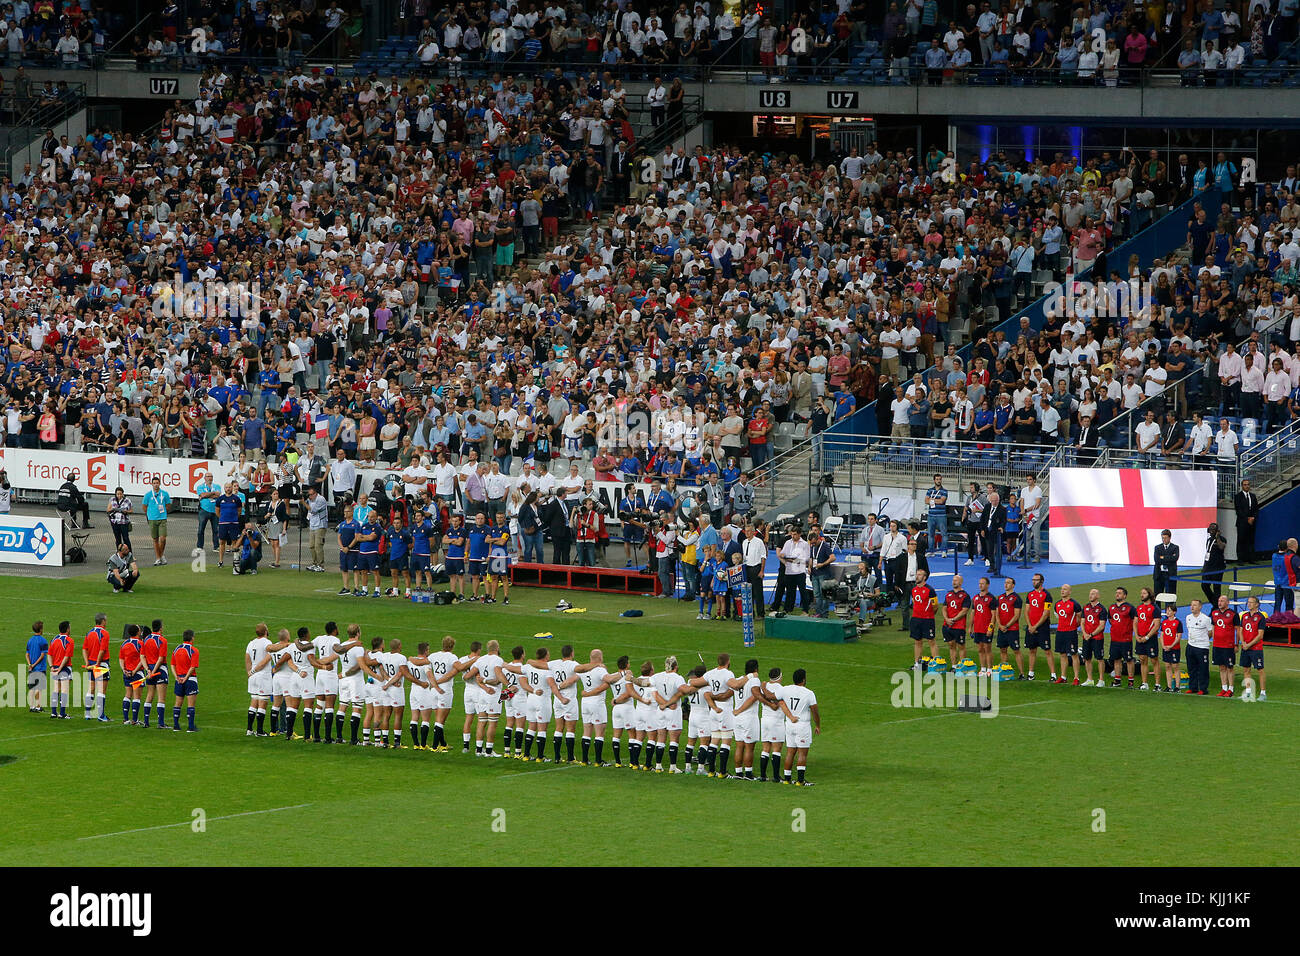 Rugby match at the Stade de France. Anthems. France. - Stock Image